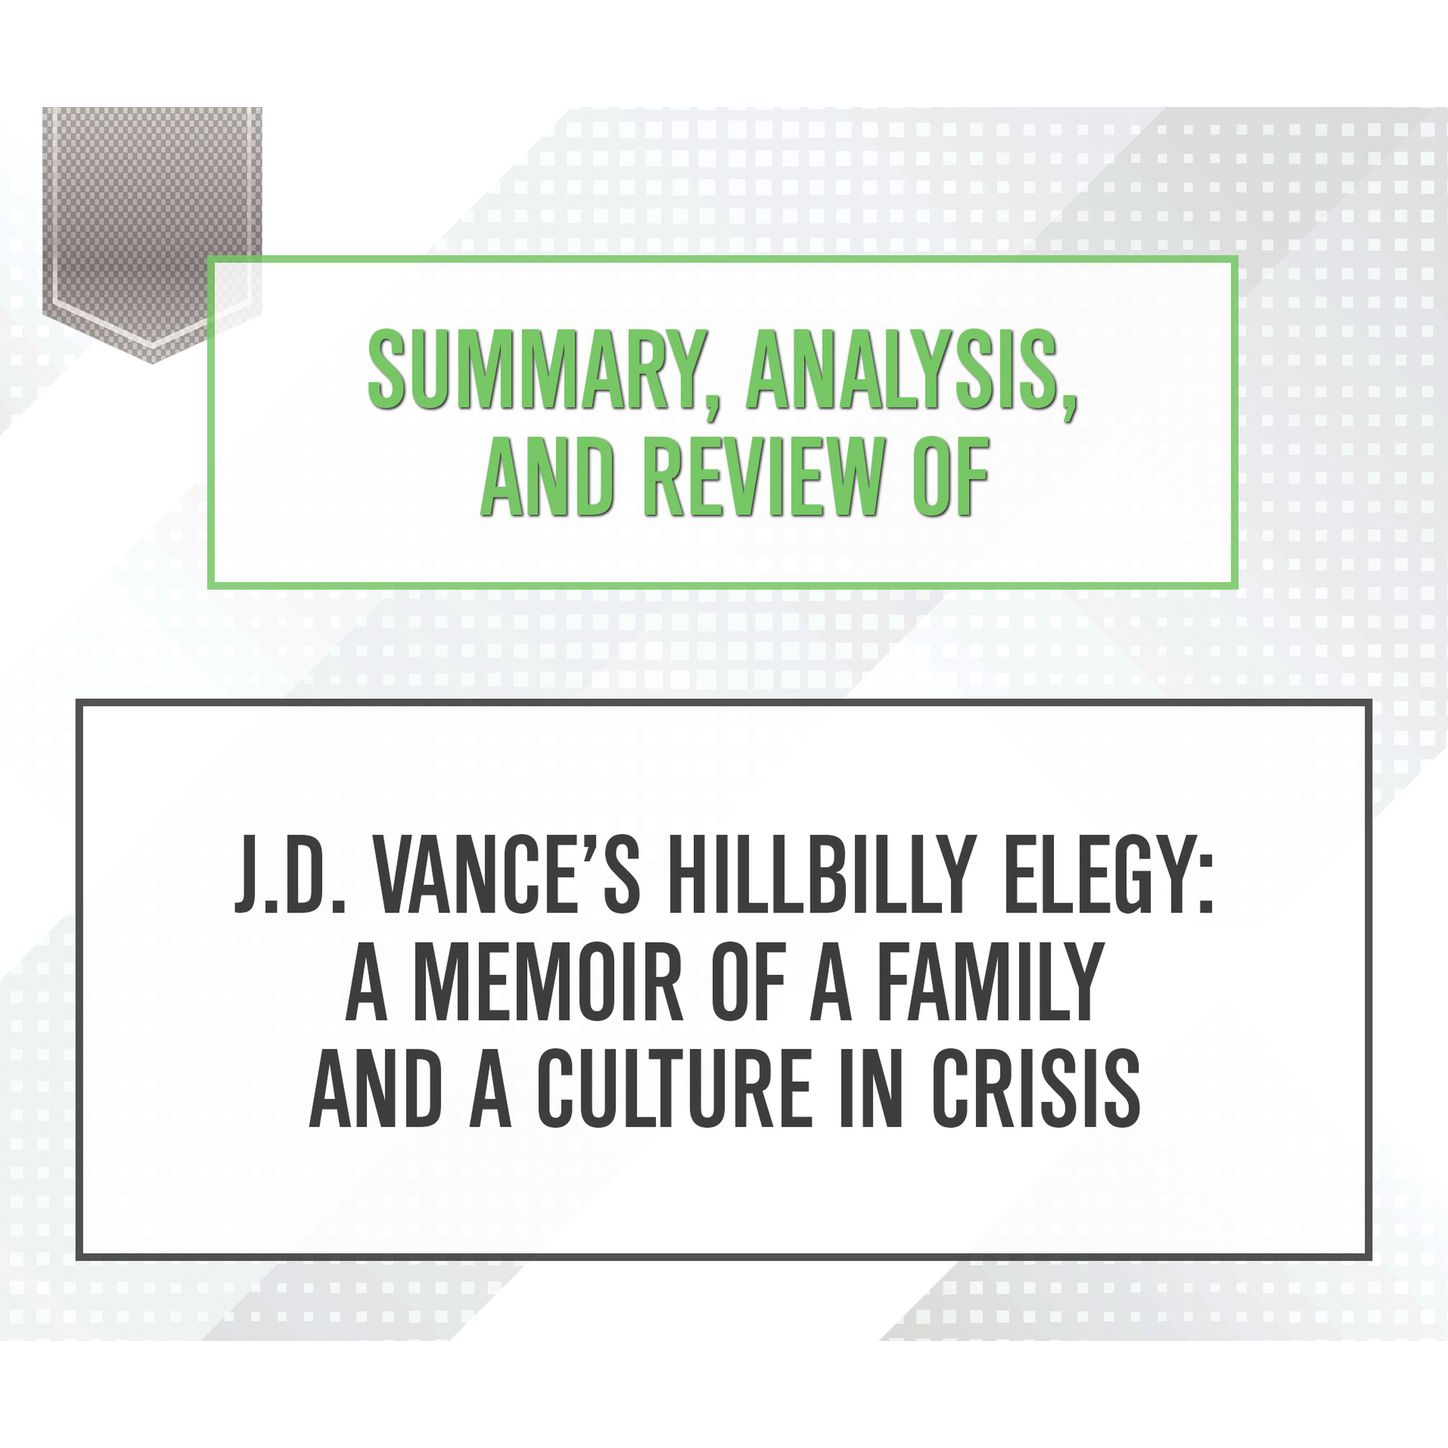 Start Publishing Notes Summary, Analysis, and Review of J.D. Vance's Hillbilly Elegy: A Memoir of a Family and a Culture in Crisis (Unabridged) judyth gregory smith myanmar a memoir of loss and recovery